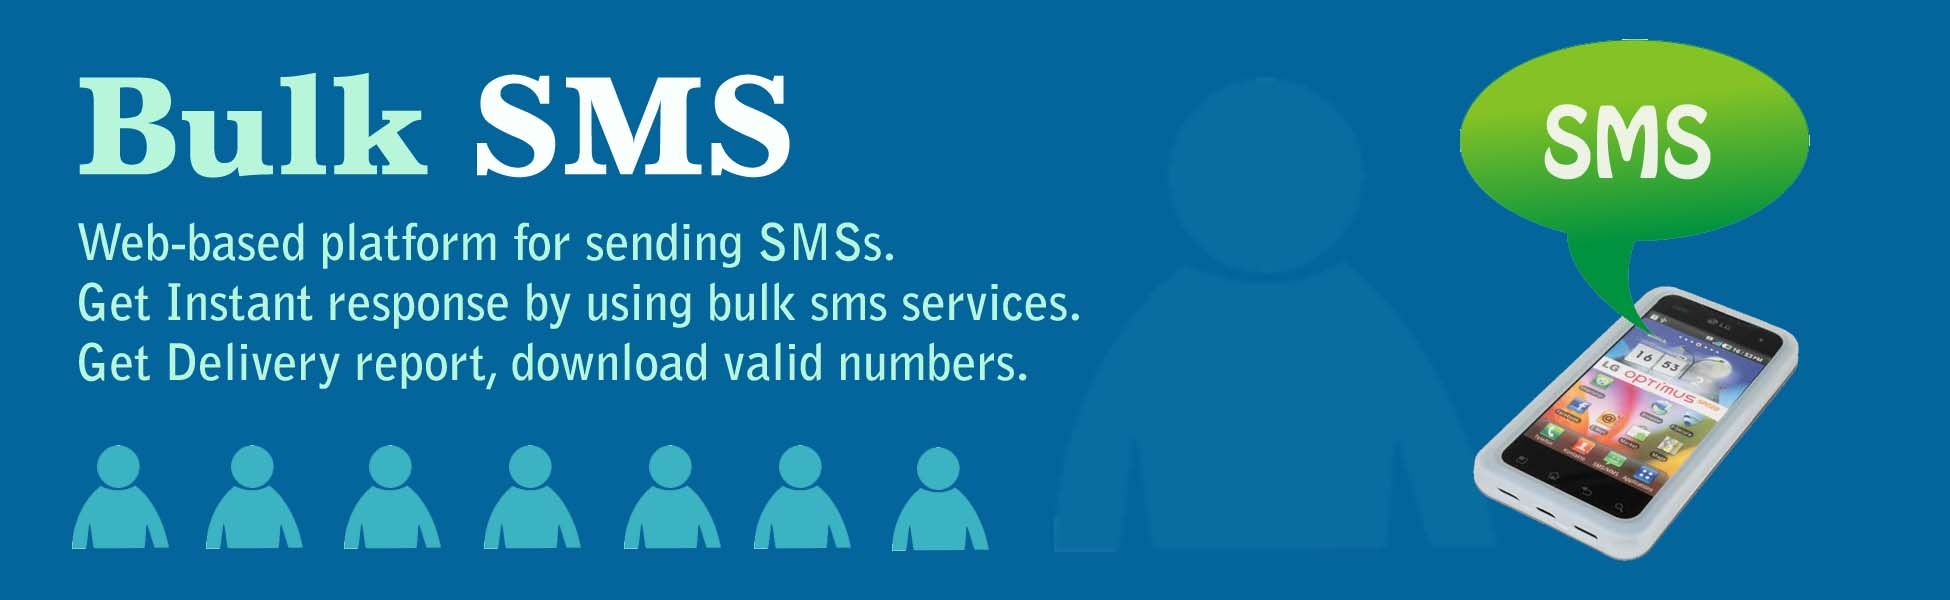 Bulk SMS Schedule feature for Sending Bulk SMS is a rarely